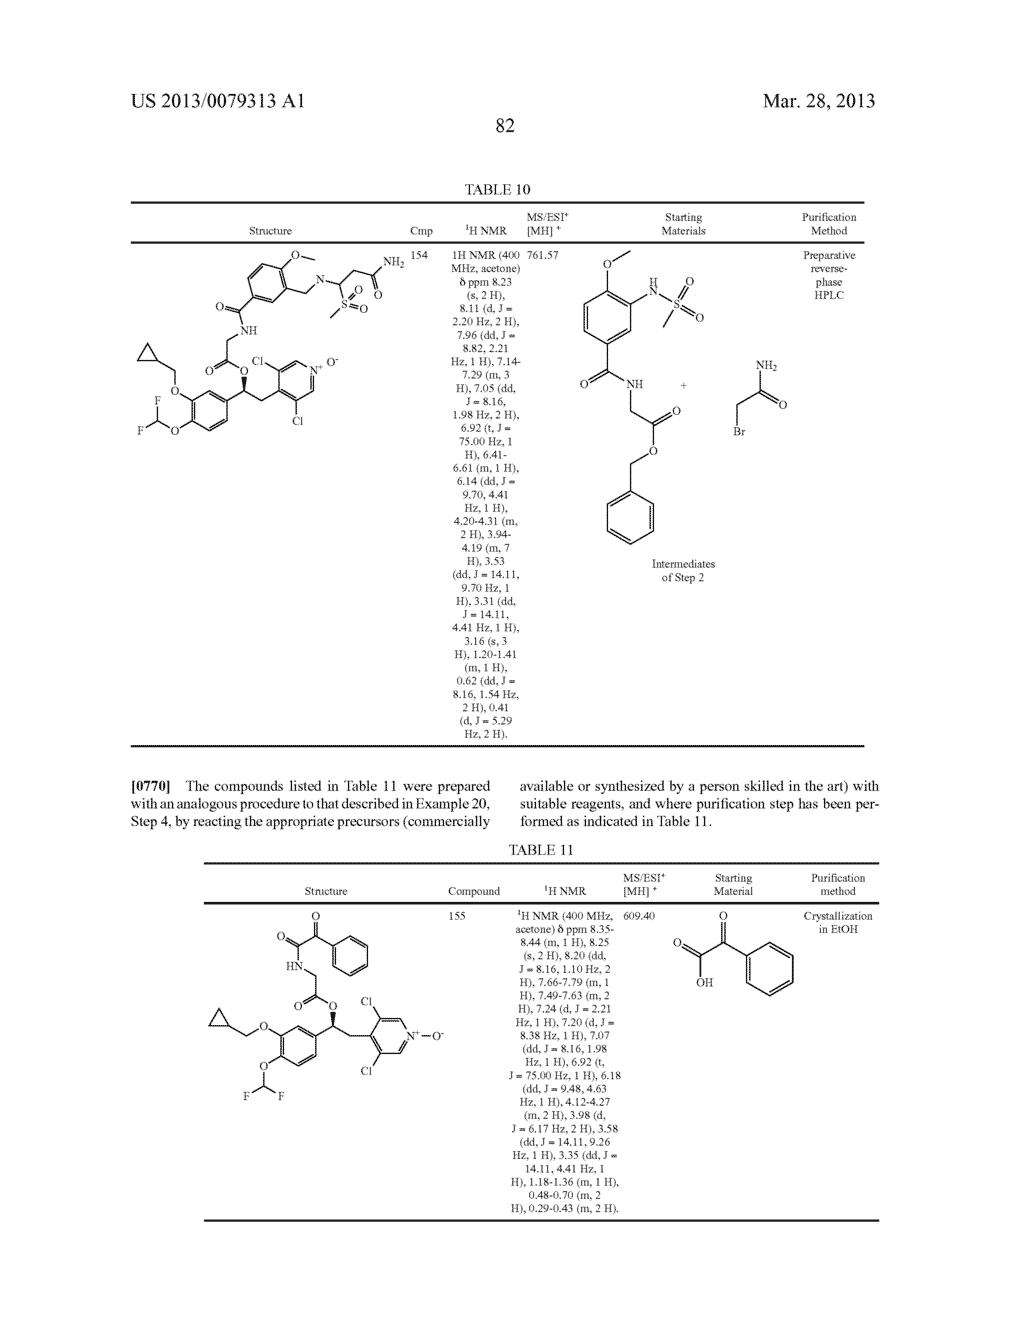 DERIVATIVES OF 1-PHENYL-2-PYRIDINYL ALKYL ALCOHOLS AS PHOSPHODIESTERASE     INHIBITORS - diagram, schematic, and image 83